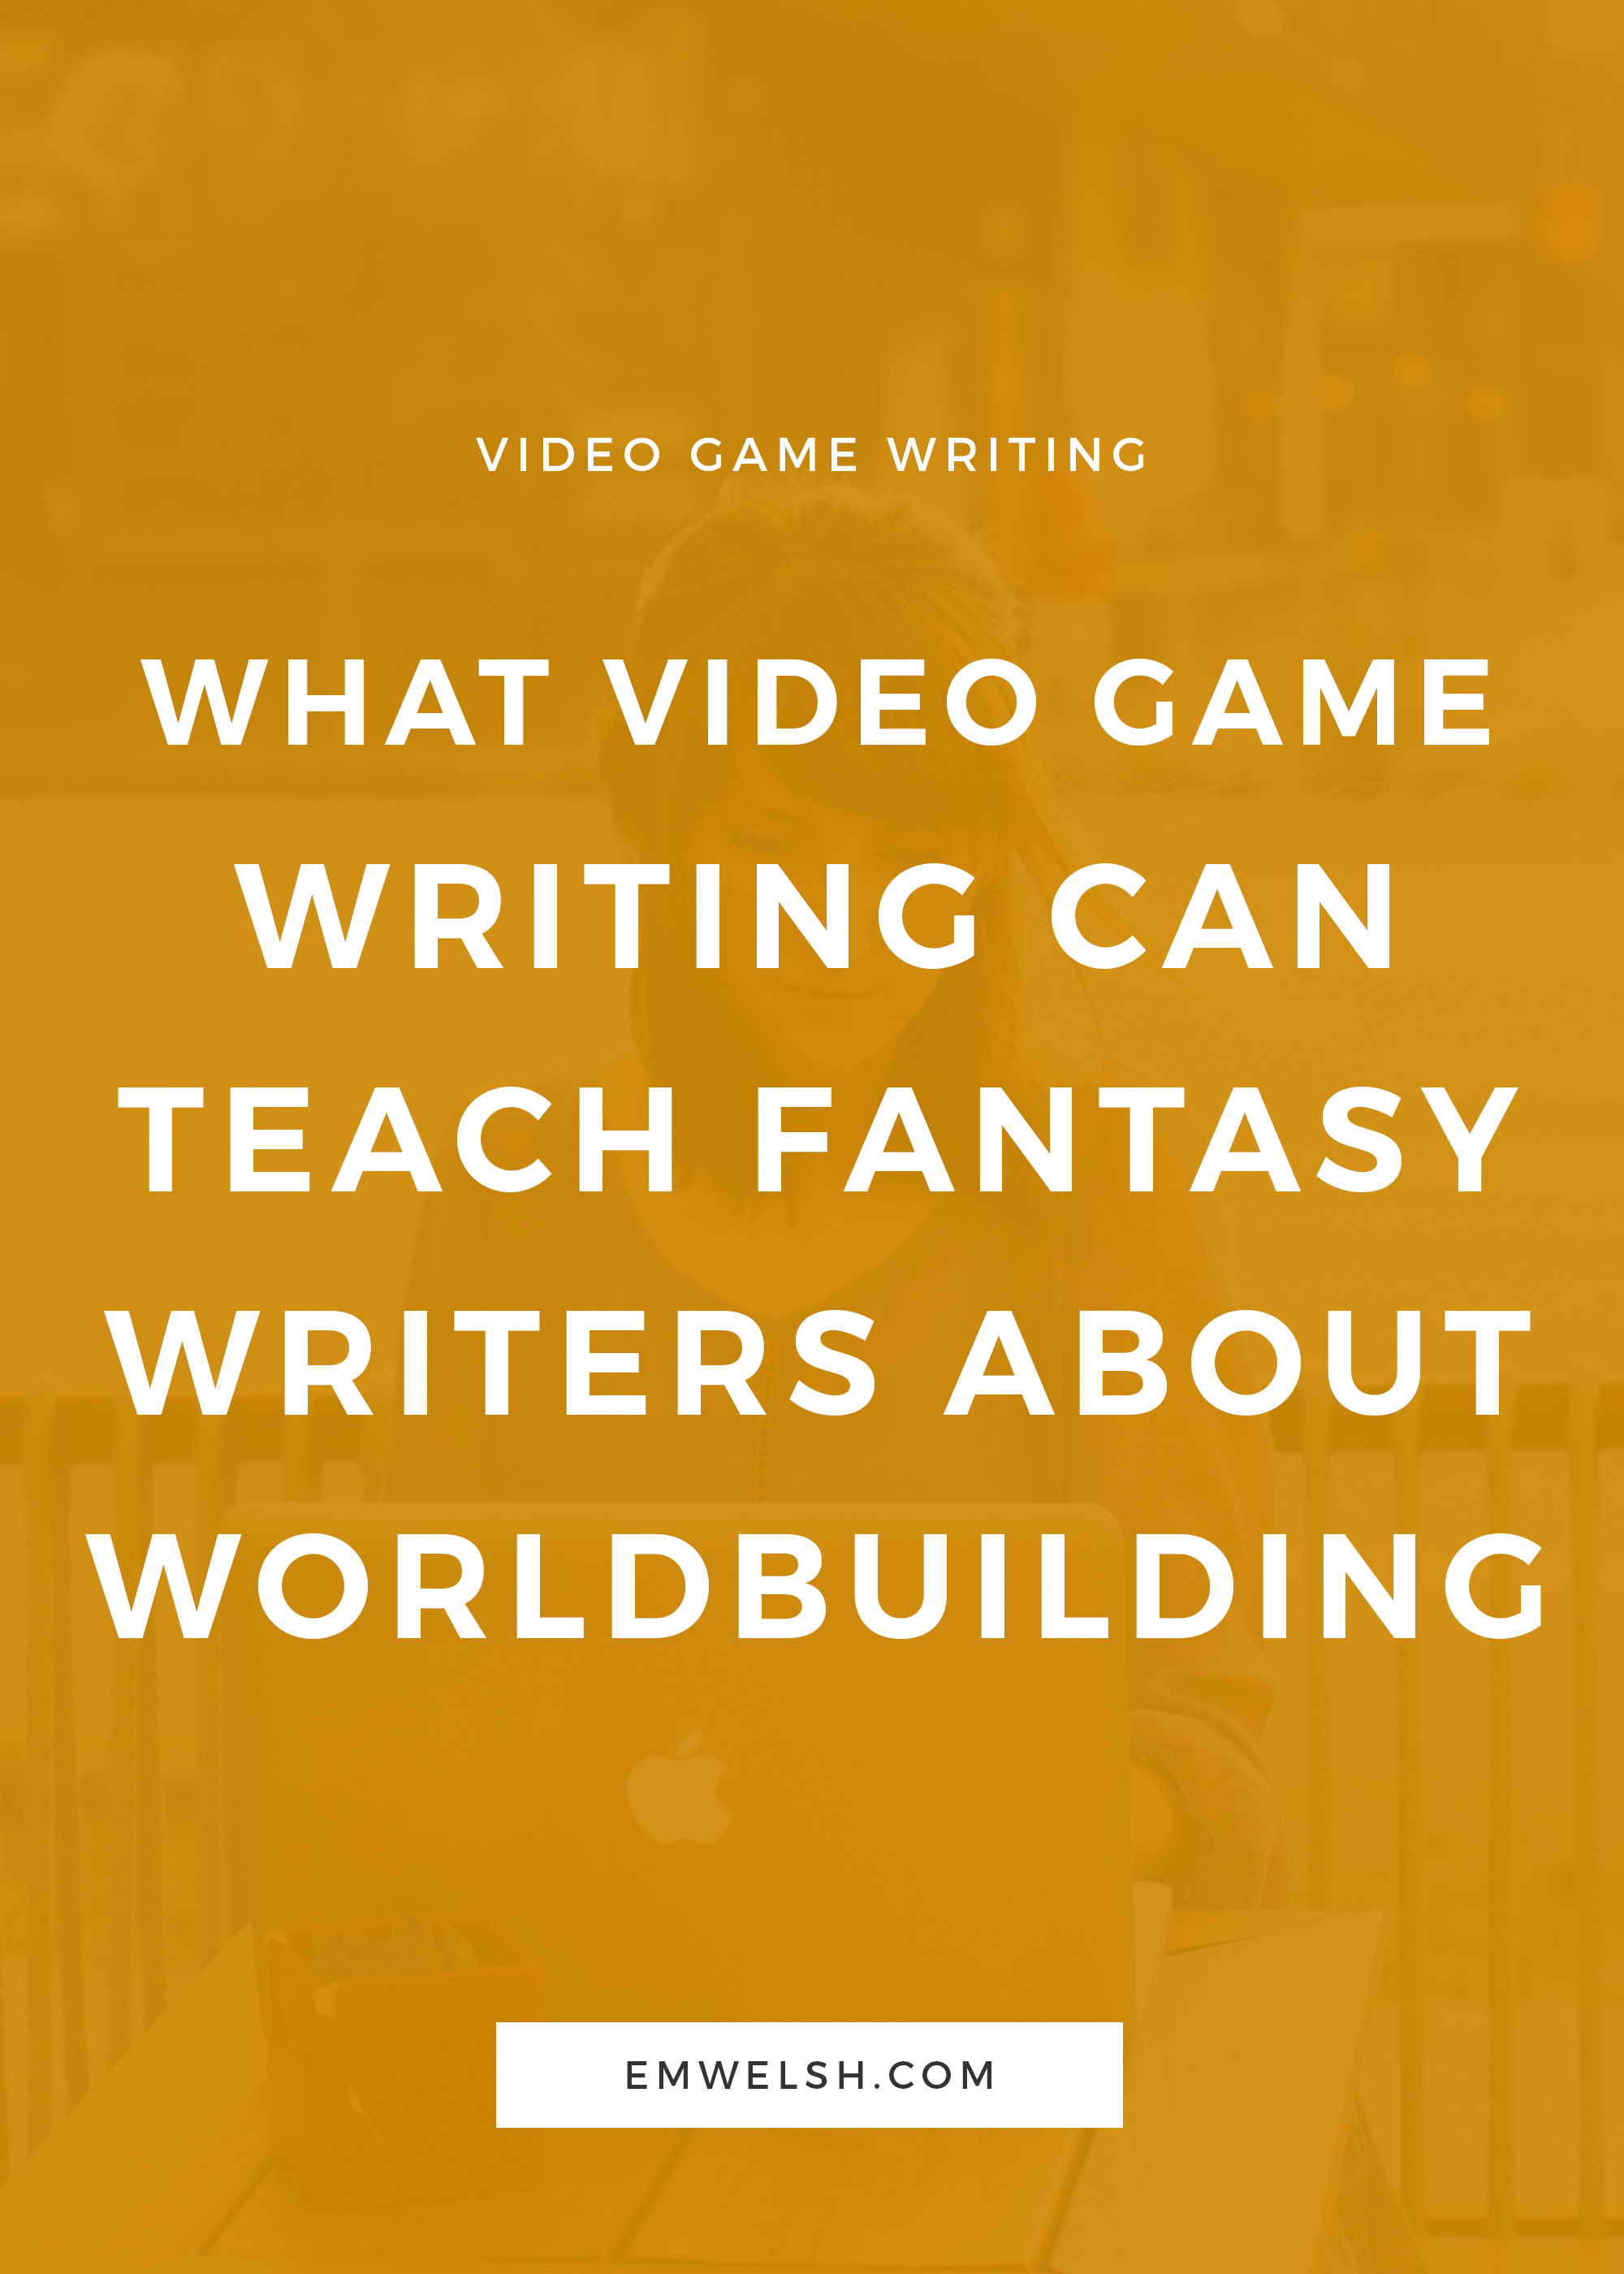 What Video Game Writing Can Teach Fantasy Writers About